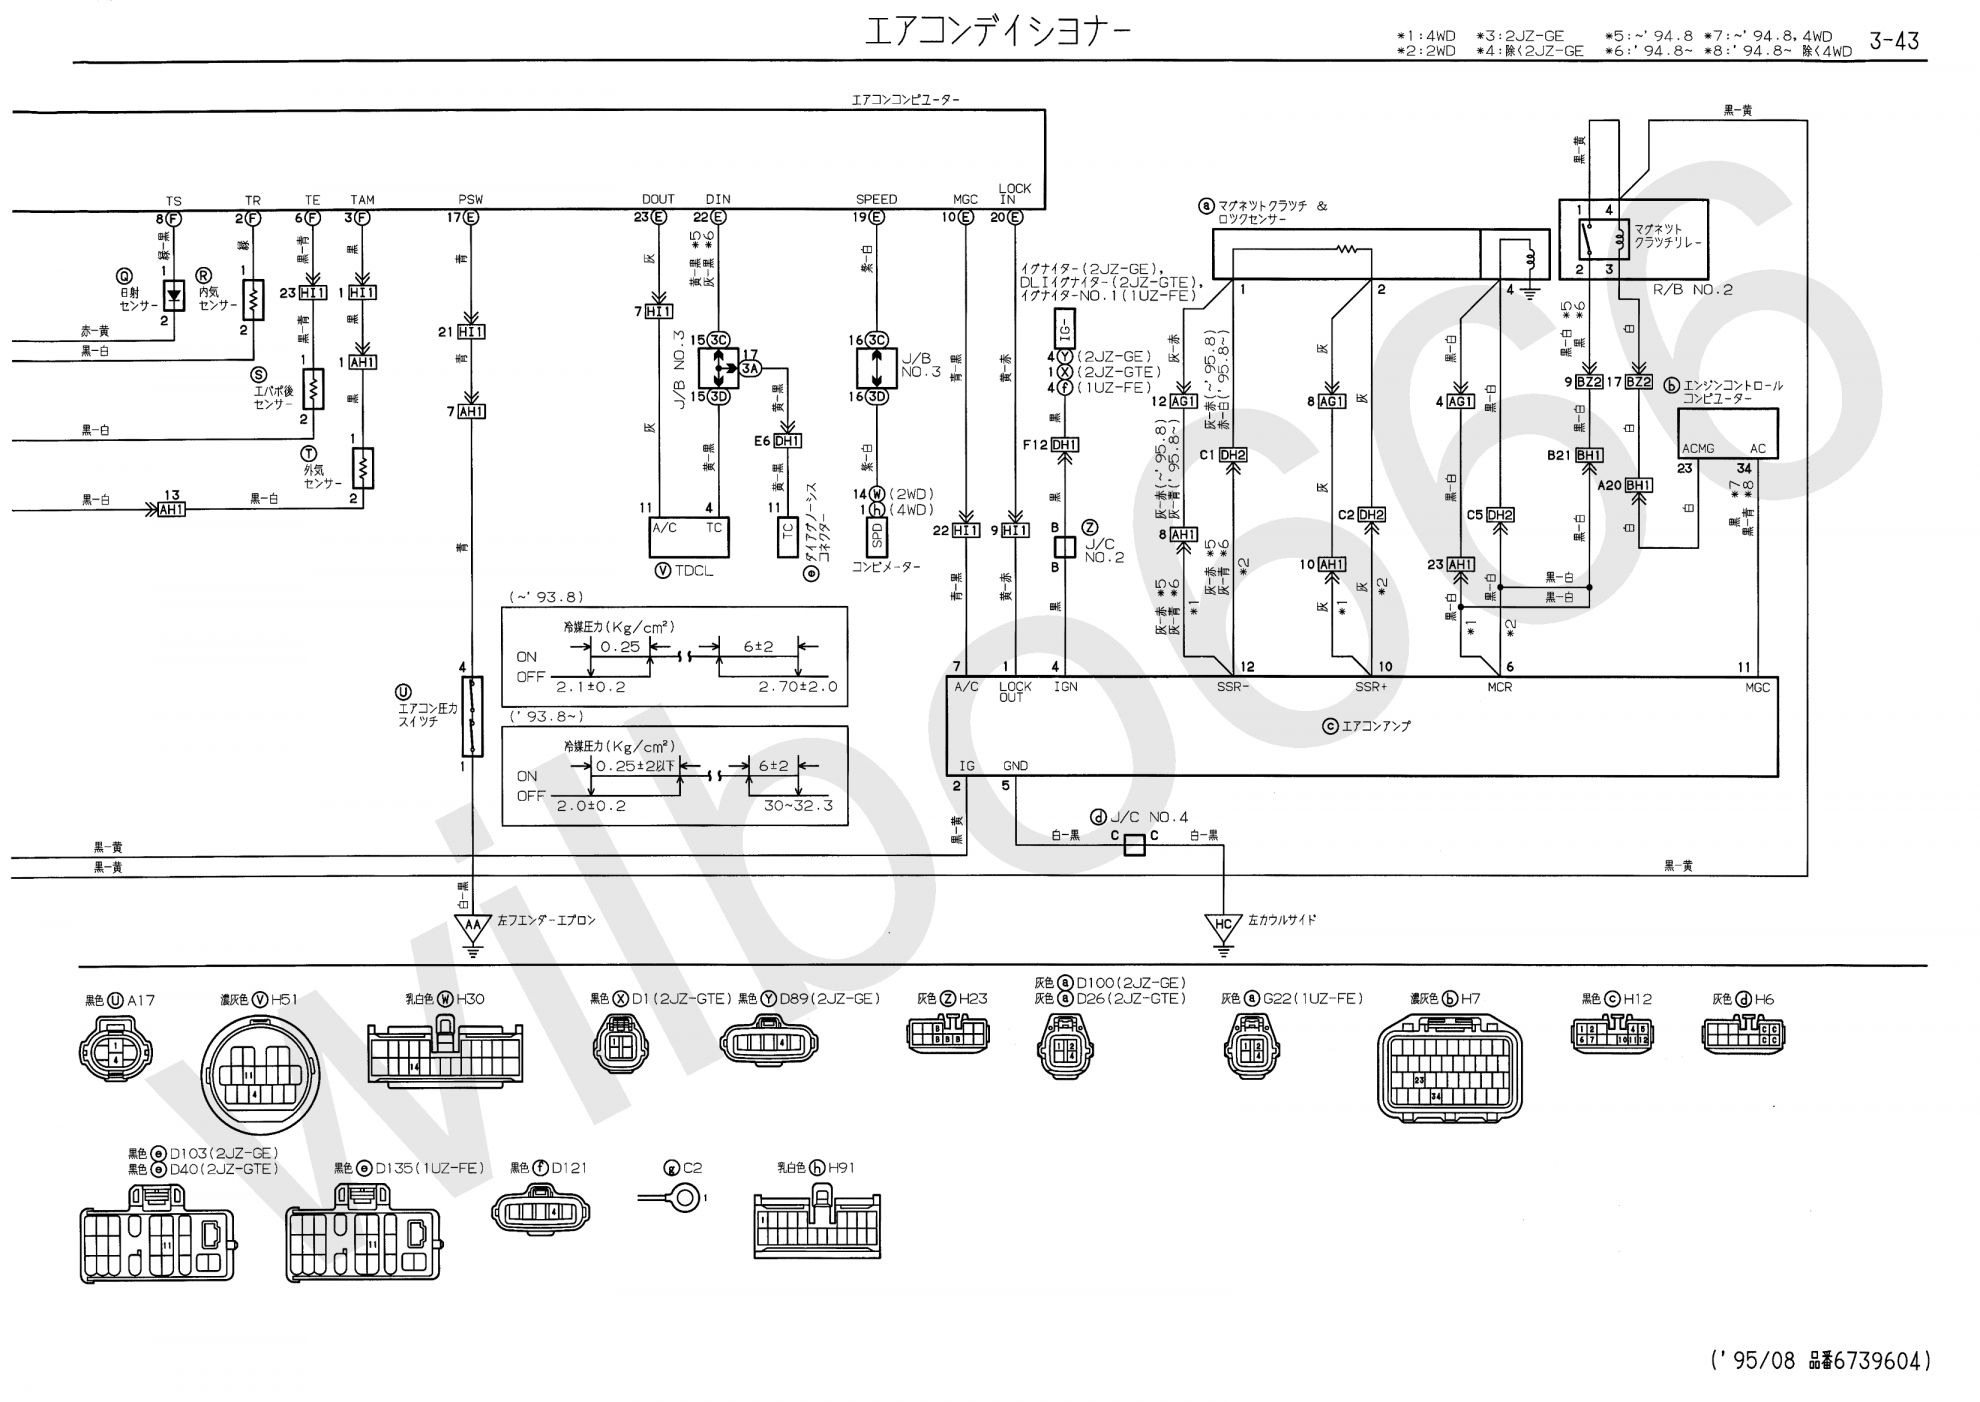 16 Engine Control Toyota 89661 Wiring Diagram Engine Diagram Wiringg Net Diagram Repair Guide Diagram Online